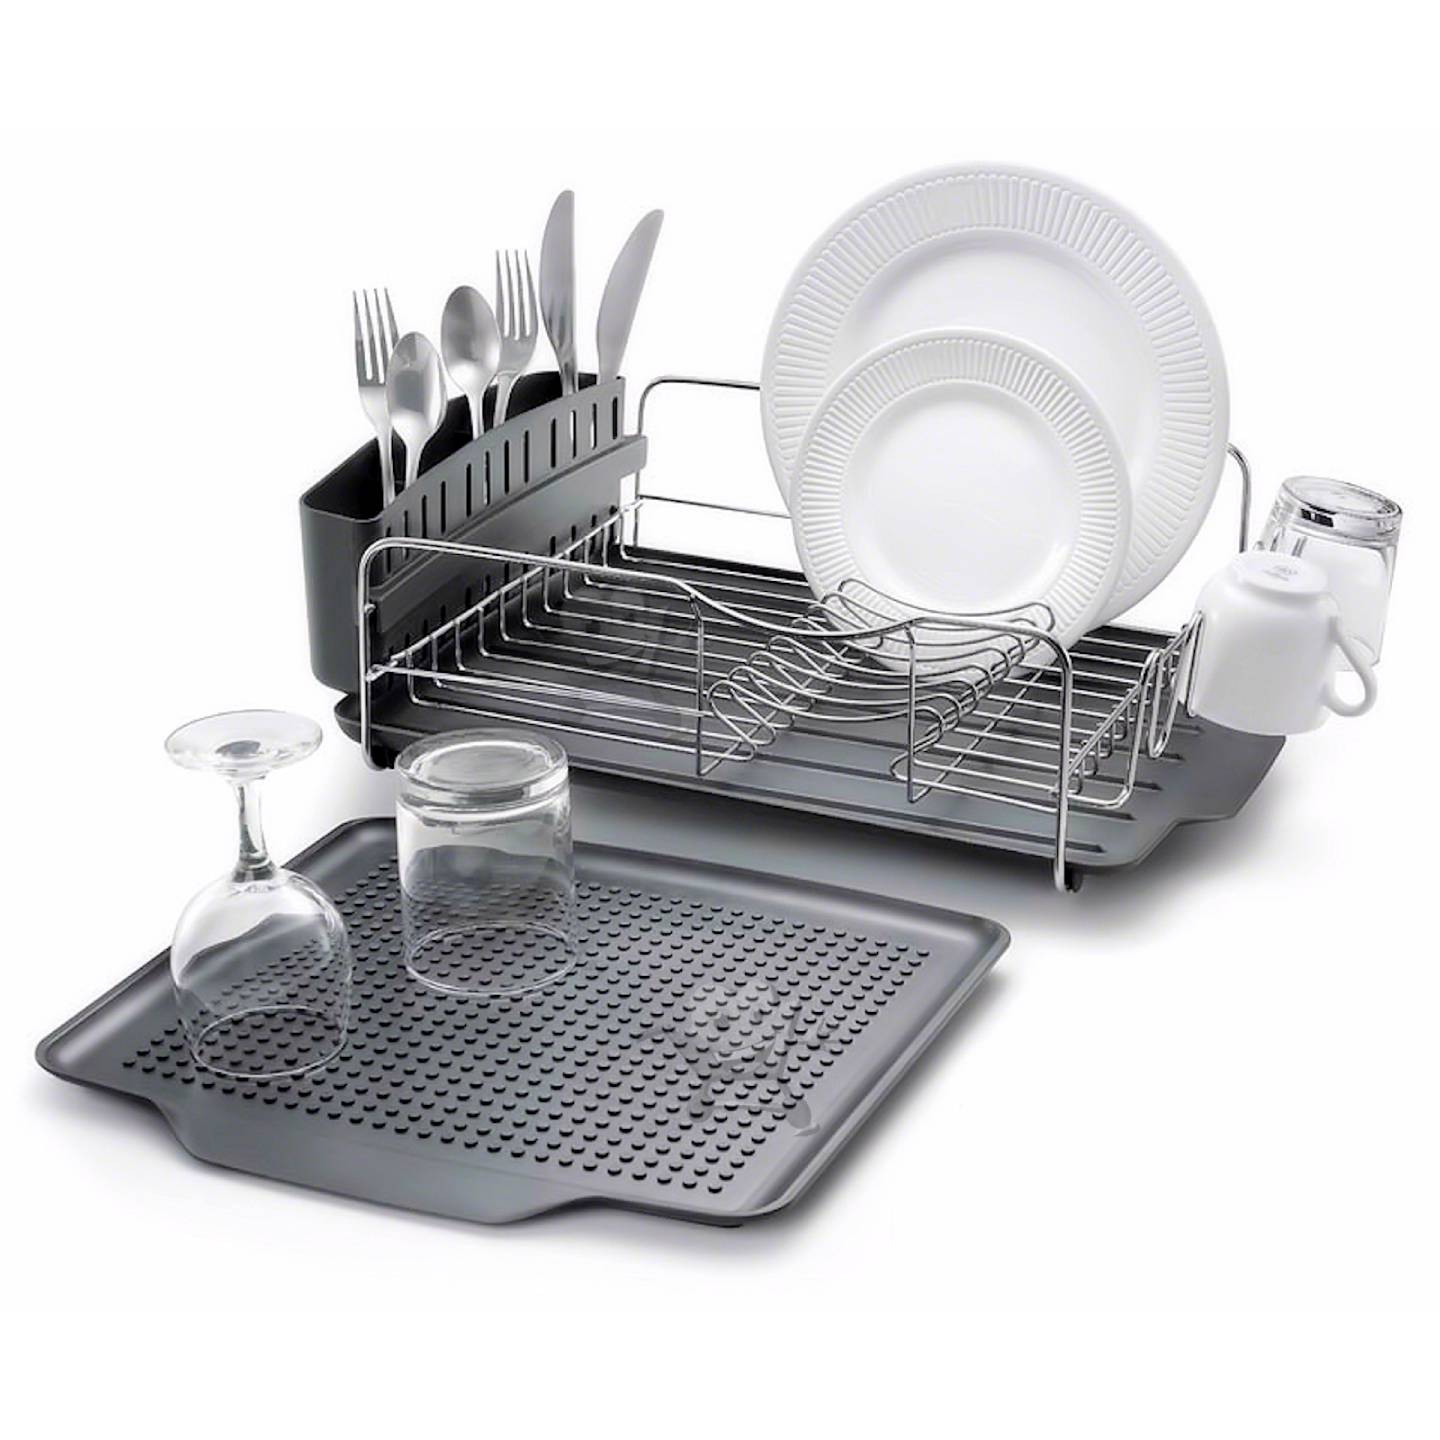 3pc kitchen aid black stainless steel dish drying rack cutlery drainer tray new ebay. Black Bedroom Furniture Sets. Home Design Ideas